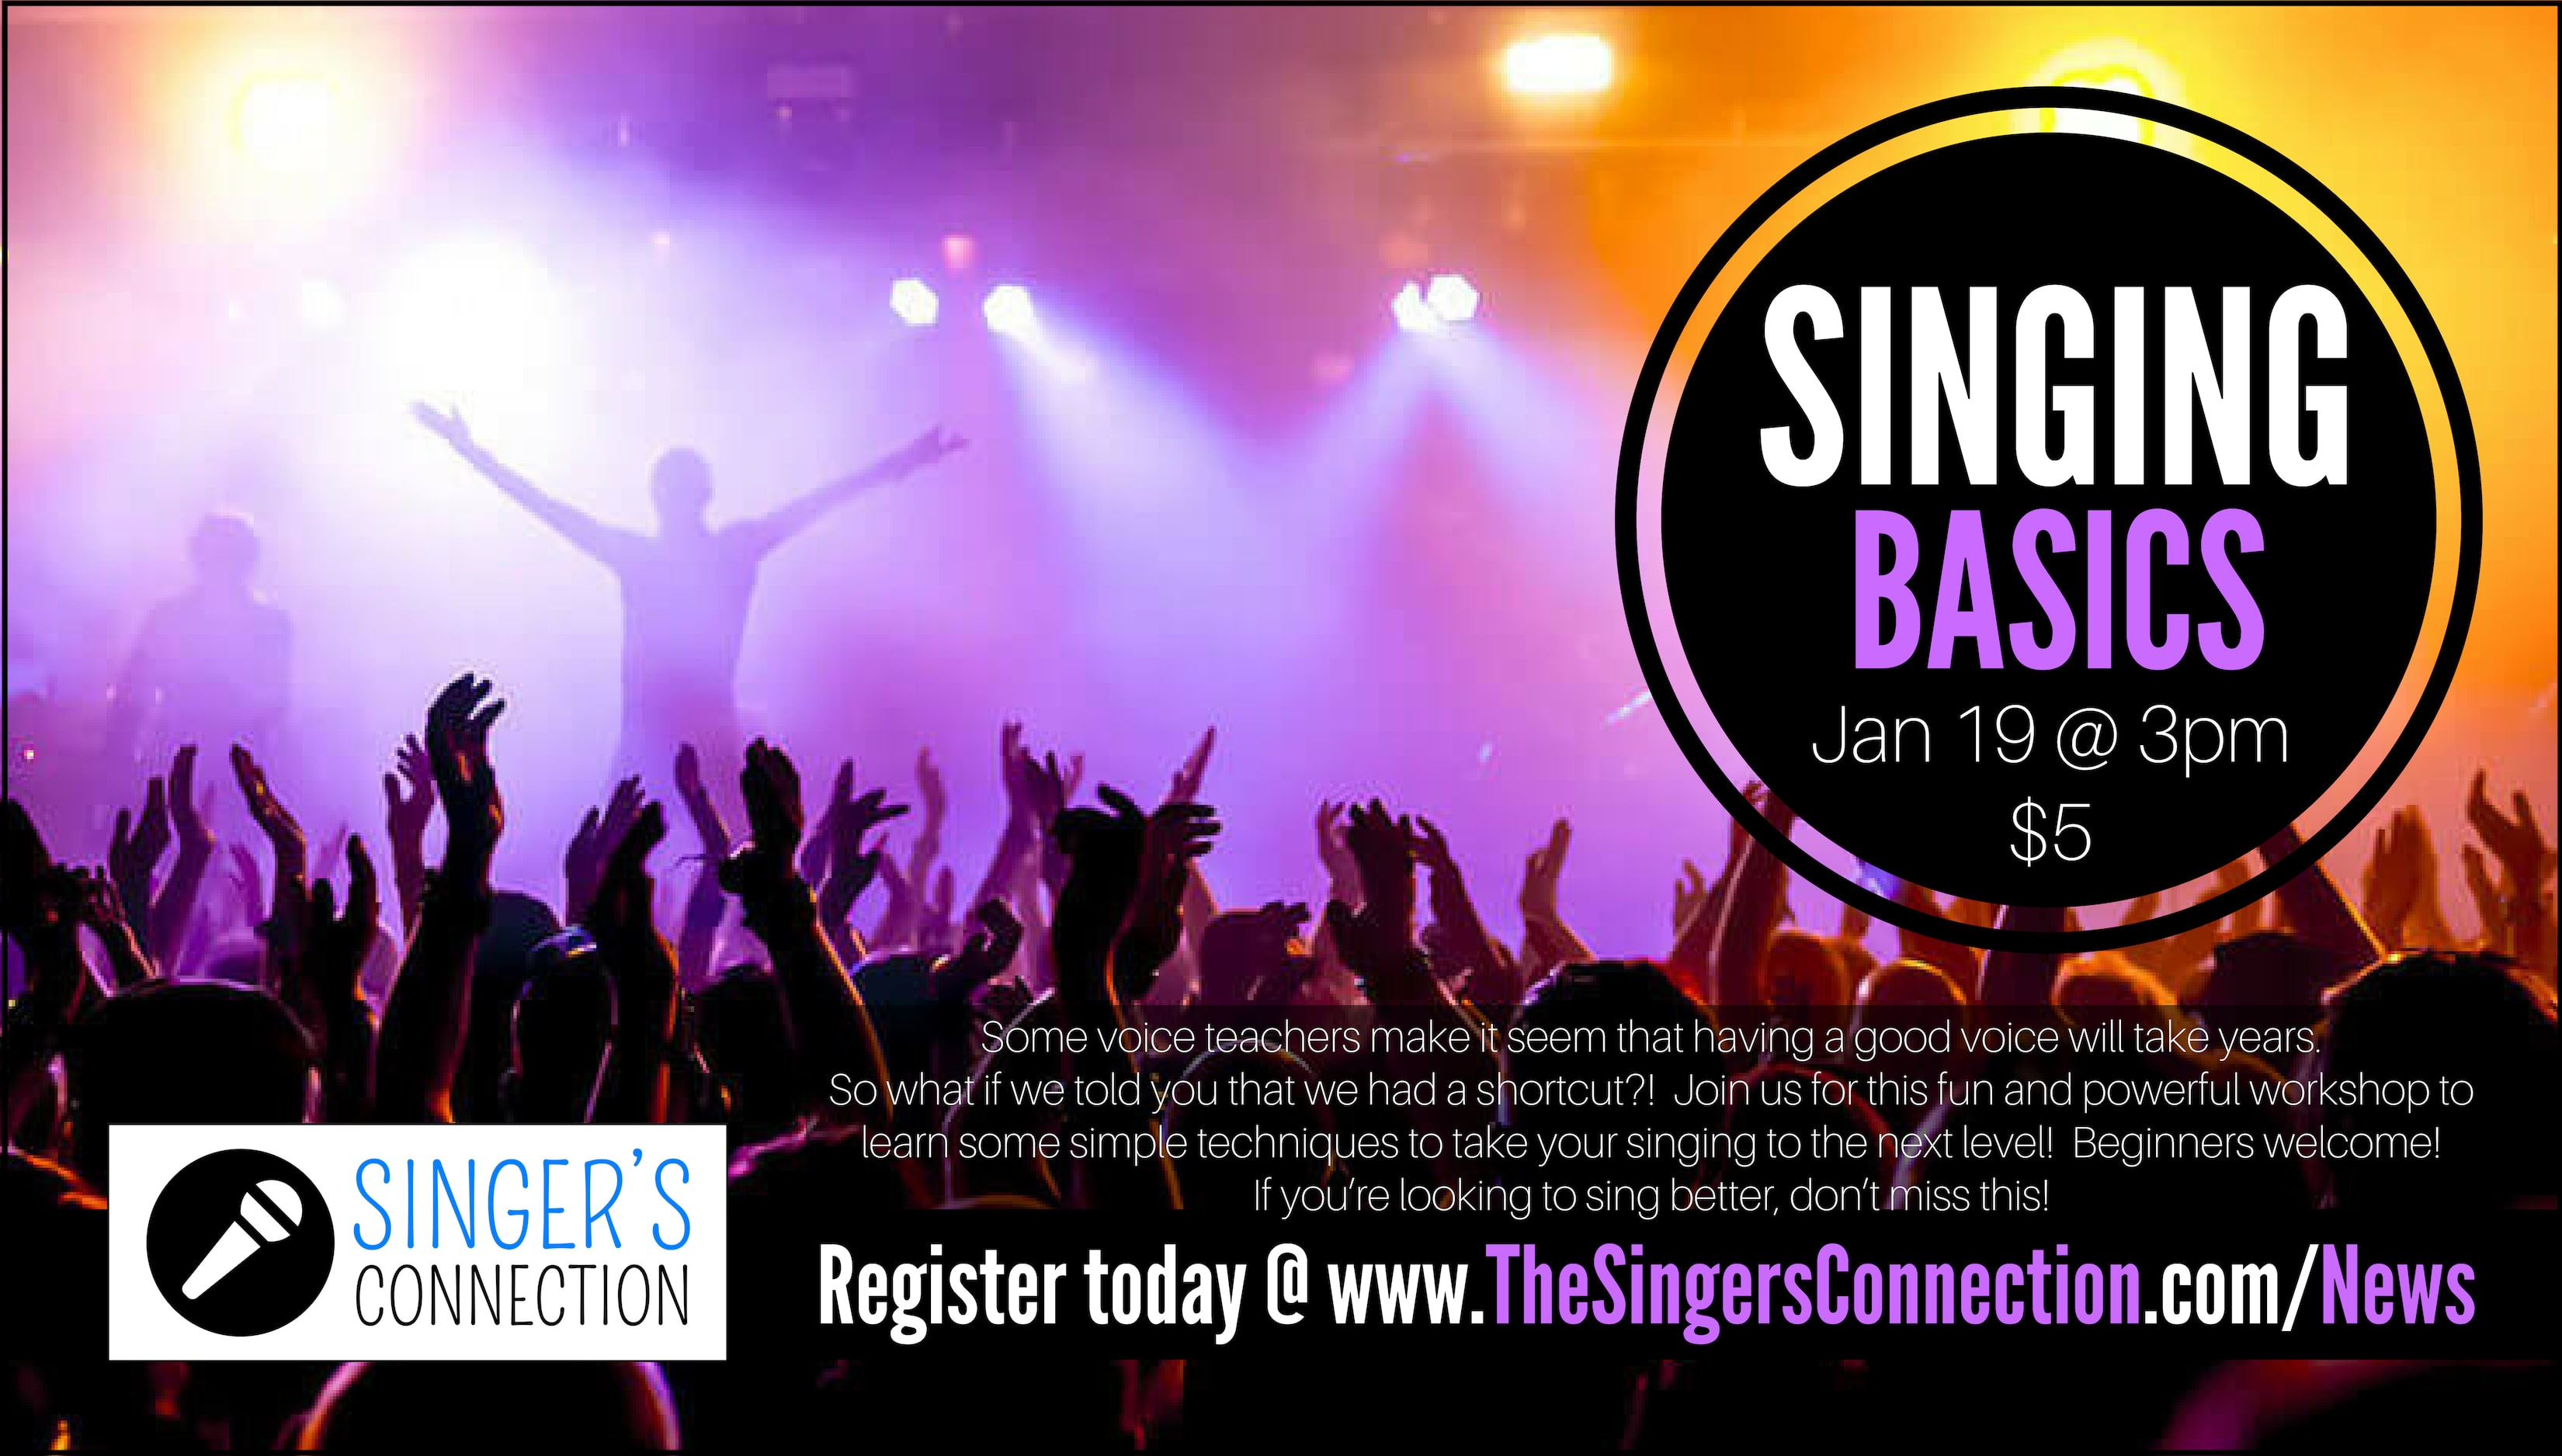 Singing Basics!  Learn simple techniques to take your singing to the next level in this AWESOME singing workshops!  Register today!